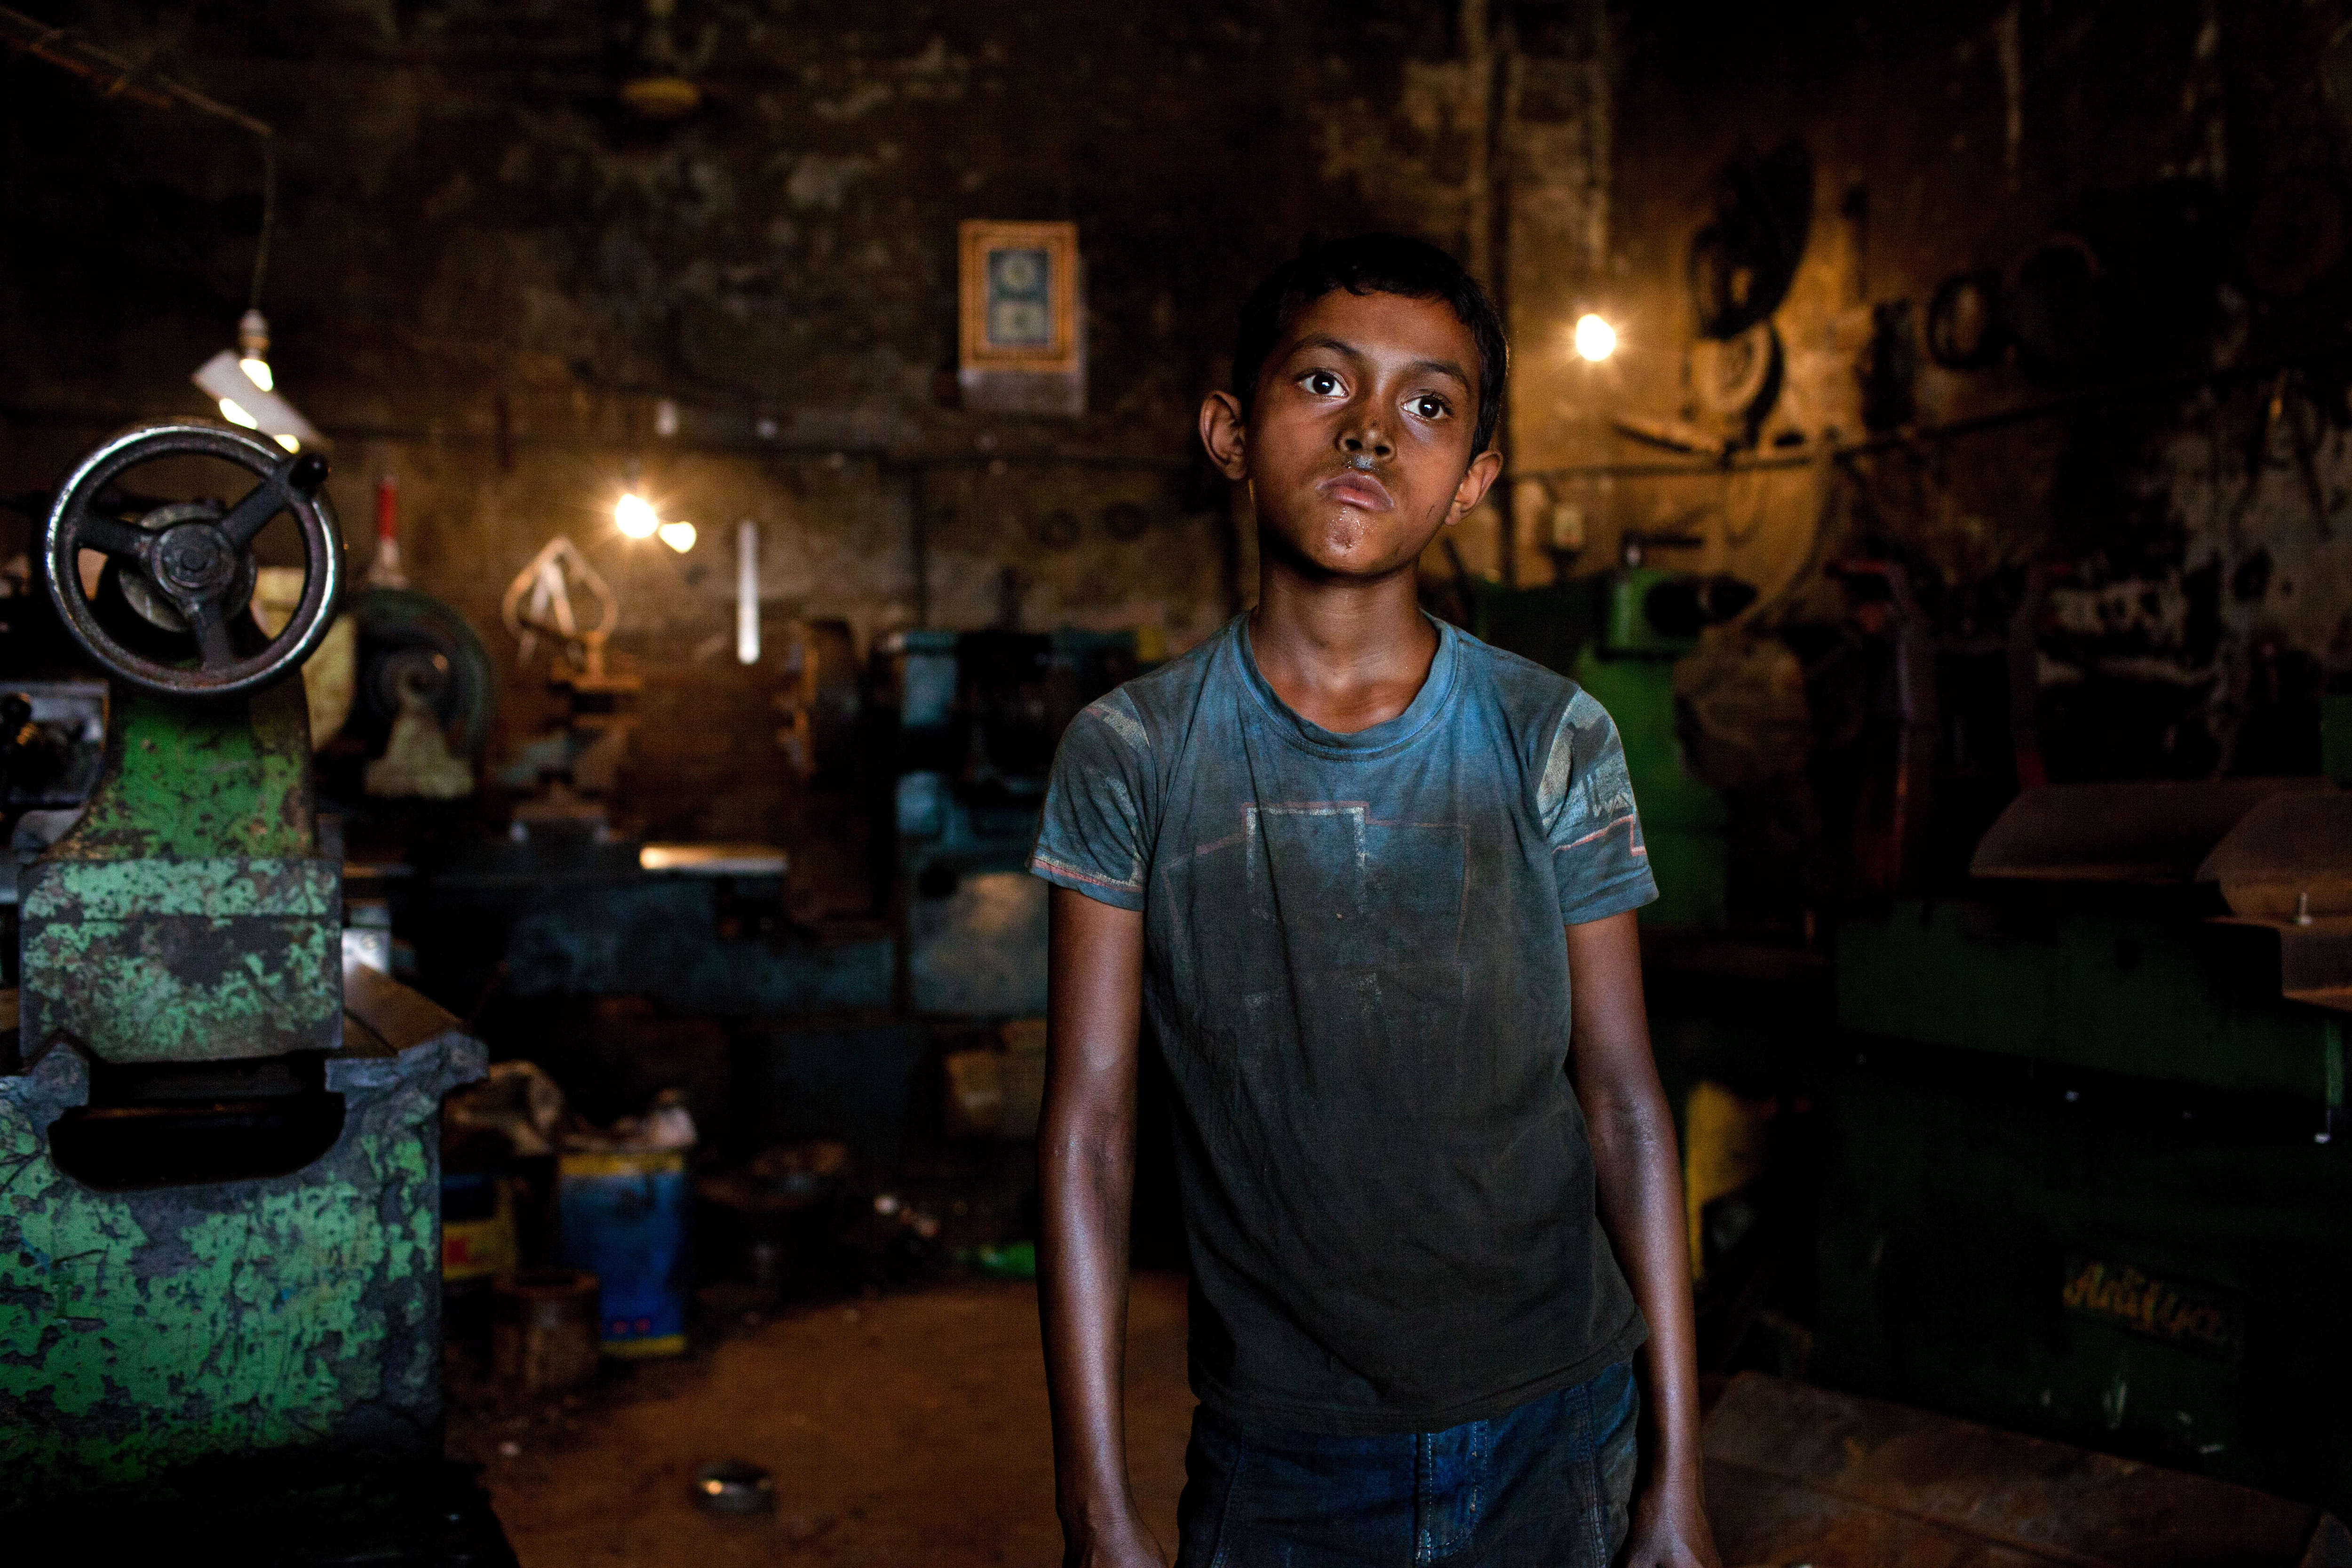 Rakib works in a parts-making shop in Dhaka, Bangladesh, on June 17, 2015. Children in Bangladesh are often employed to do hard manual labor